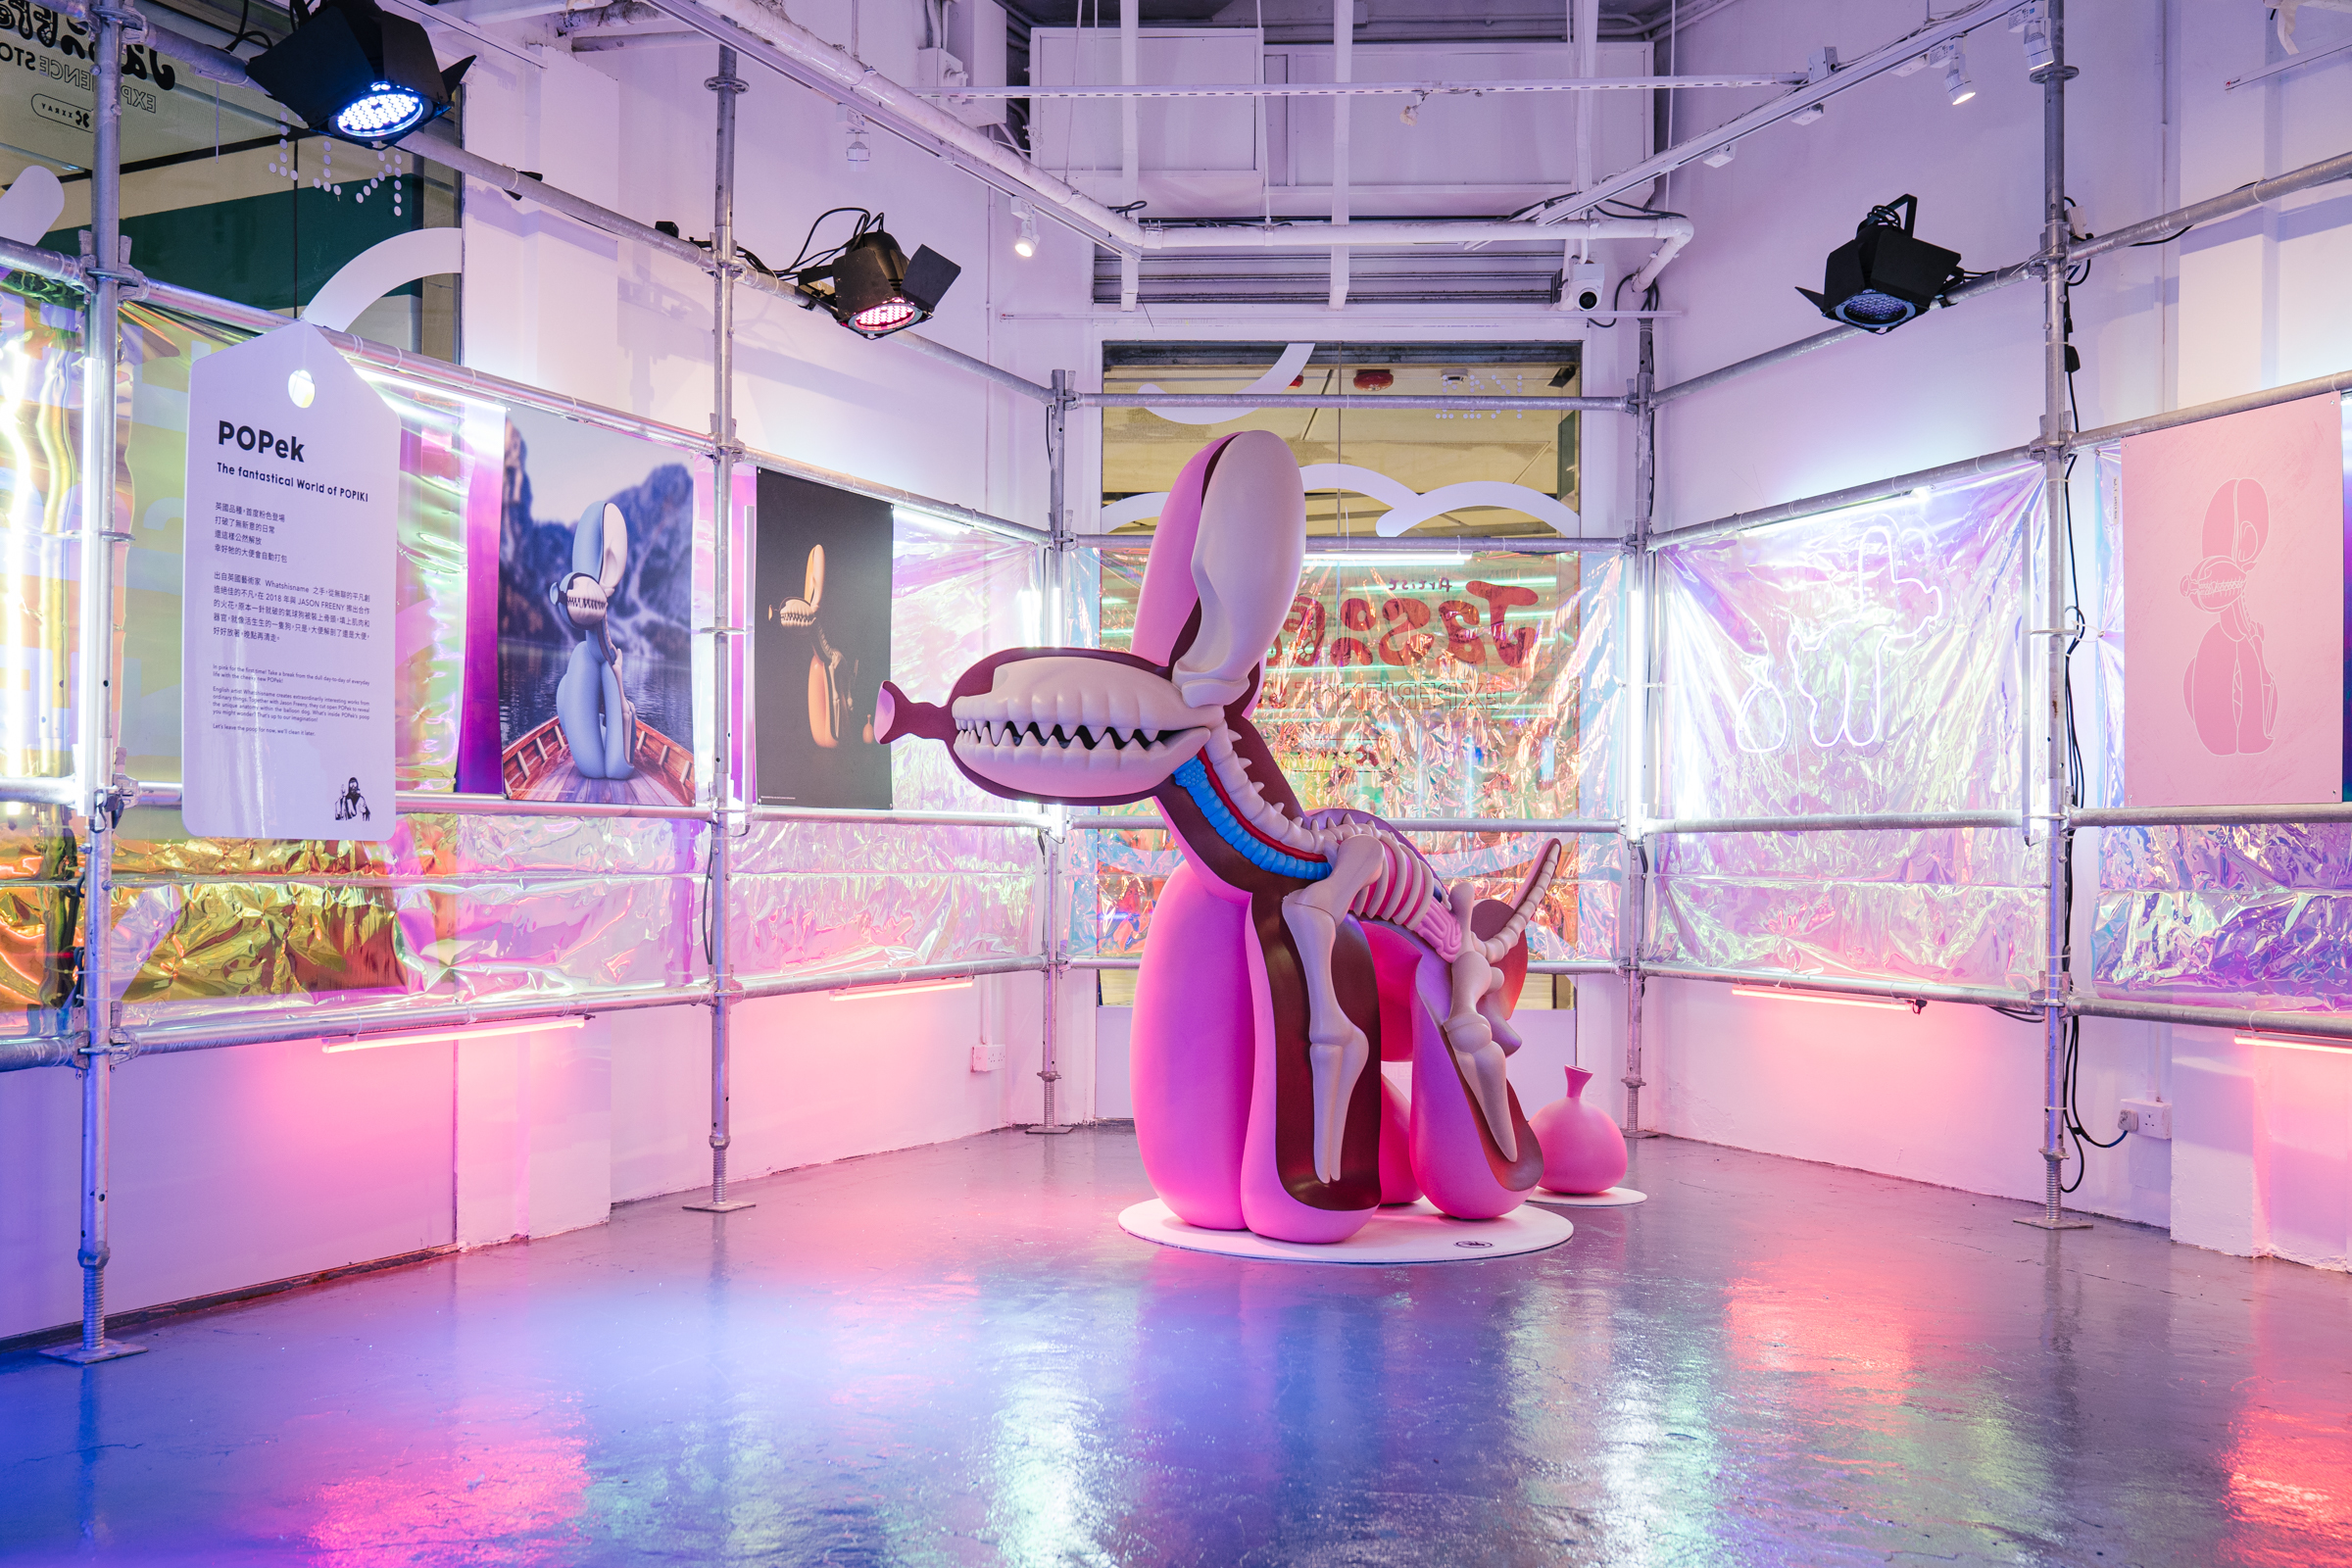 Outside In: An Unconventional World of Art Toys